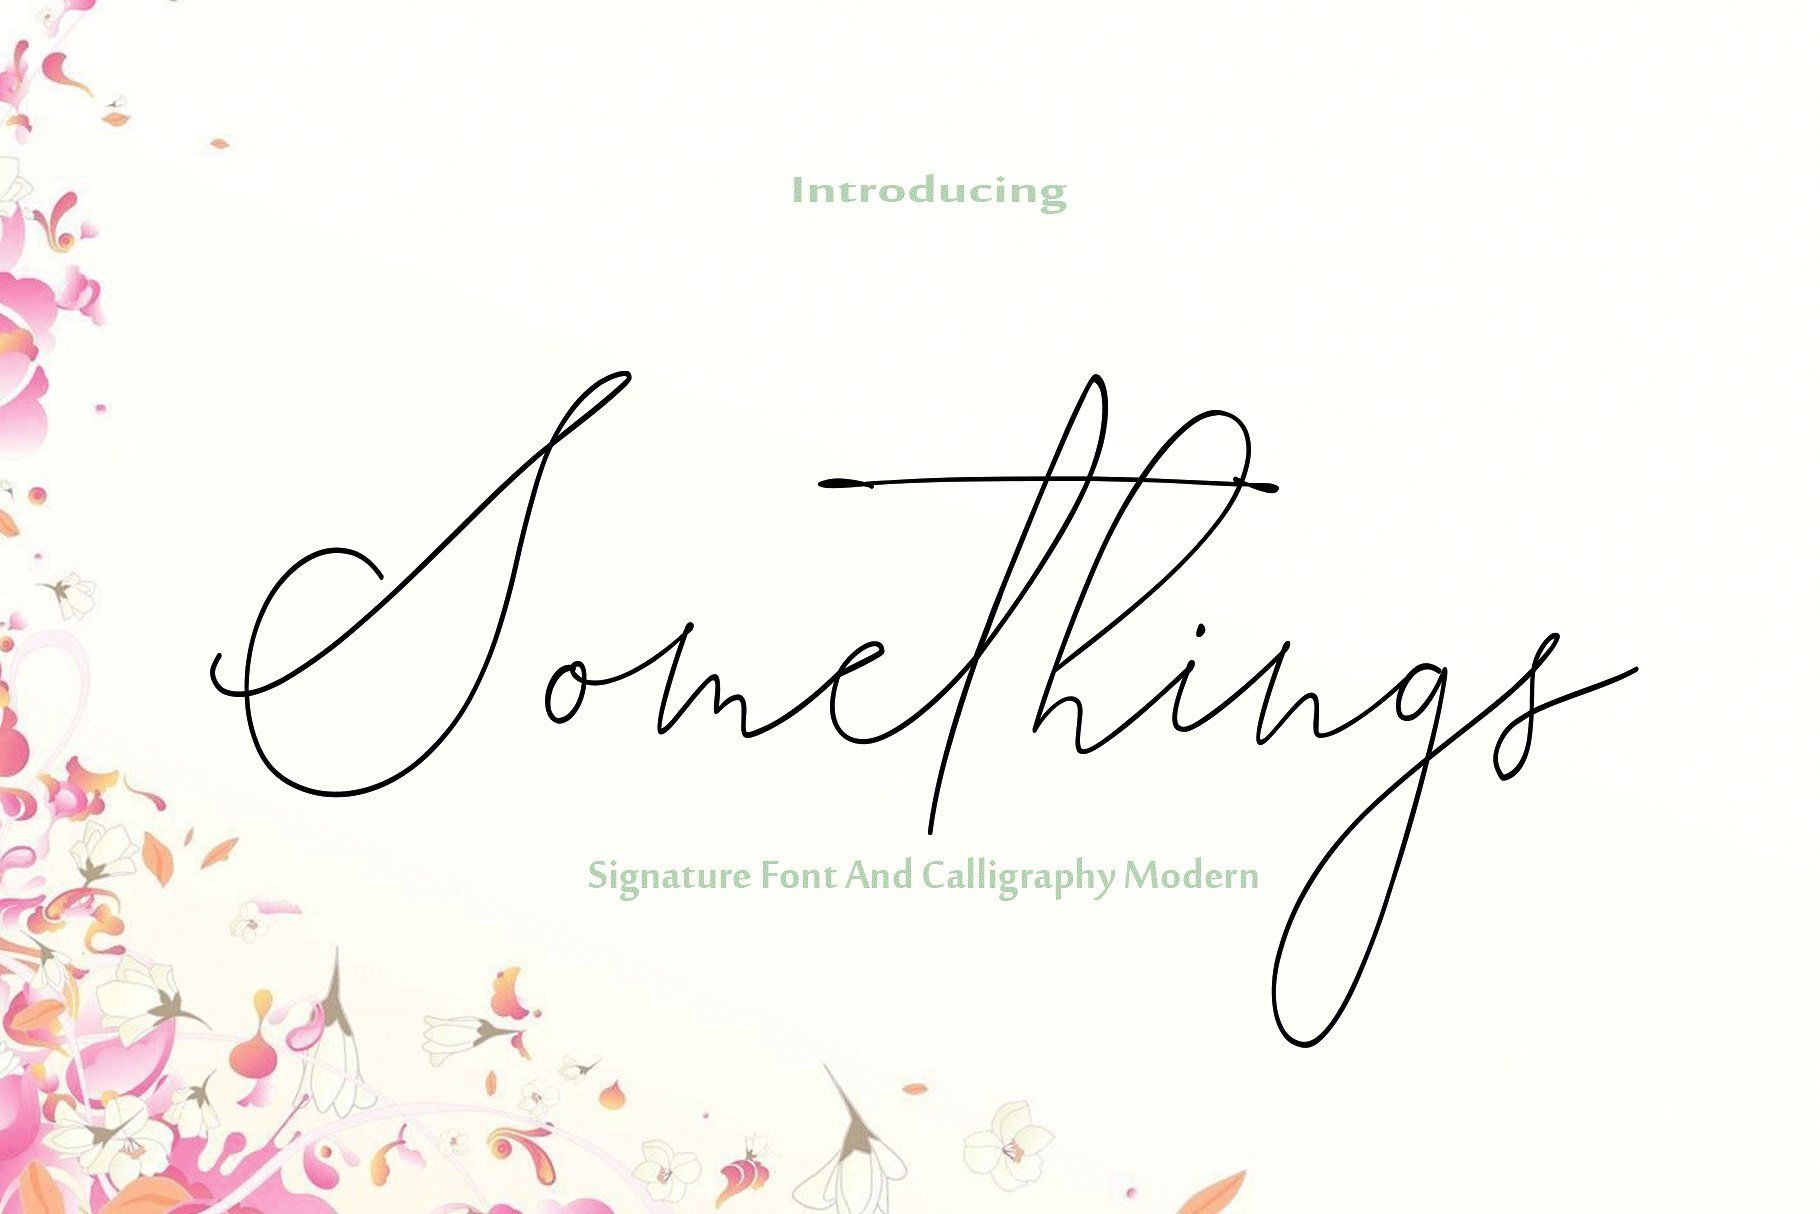 Somethings Script Buy Now $15 - Handwritten Fonts, Alphabet Fonts, Free Fonts, Script Fonts, Modern Fonts, Cursive Fonts, Design Fonts, Rustic Fonts, Calligraphy Fonts, Simple Fonts, Typography, Serif Fonts, Elegant Fonts, Professional Fonts, Beautiful Fonts https://avemateiu.com/fonts/